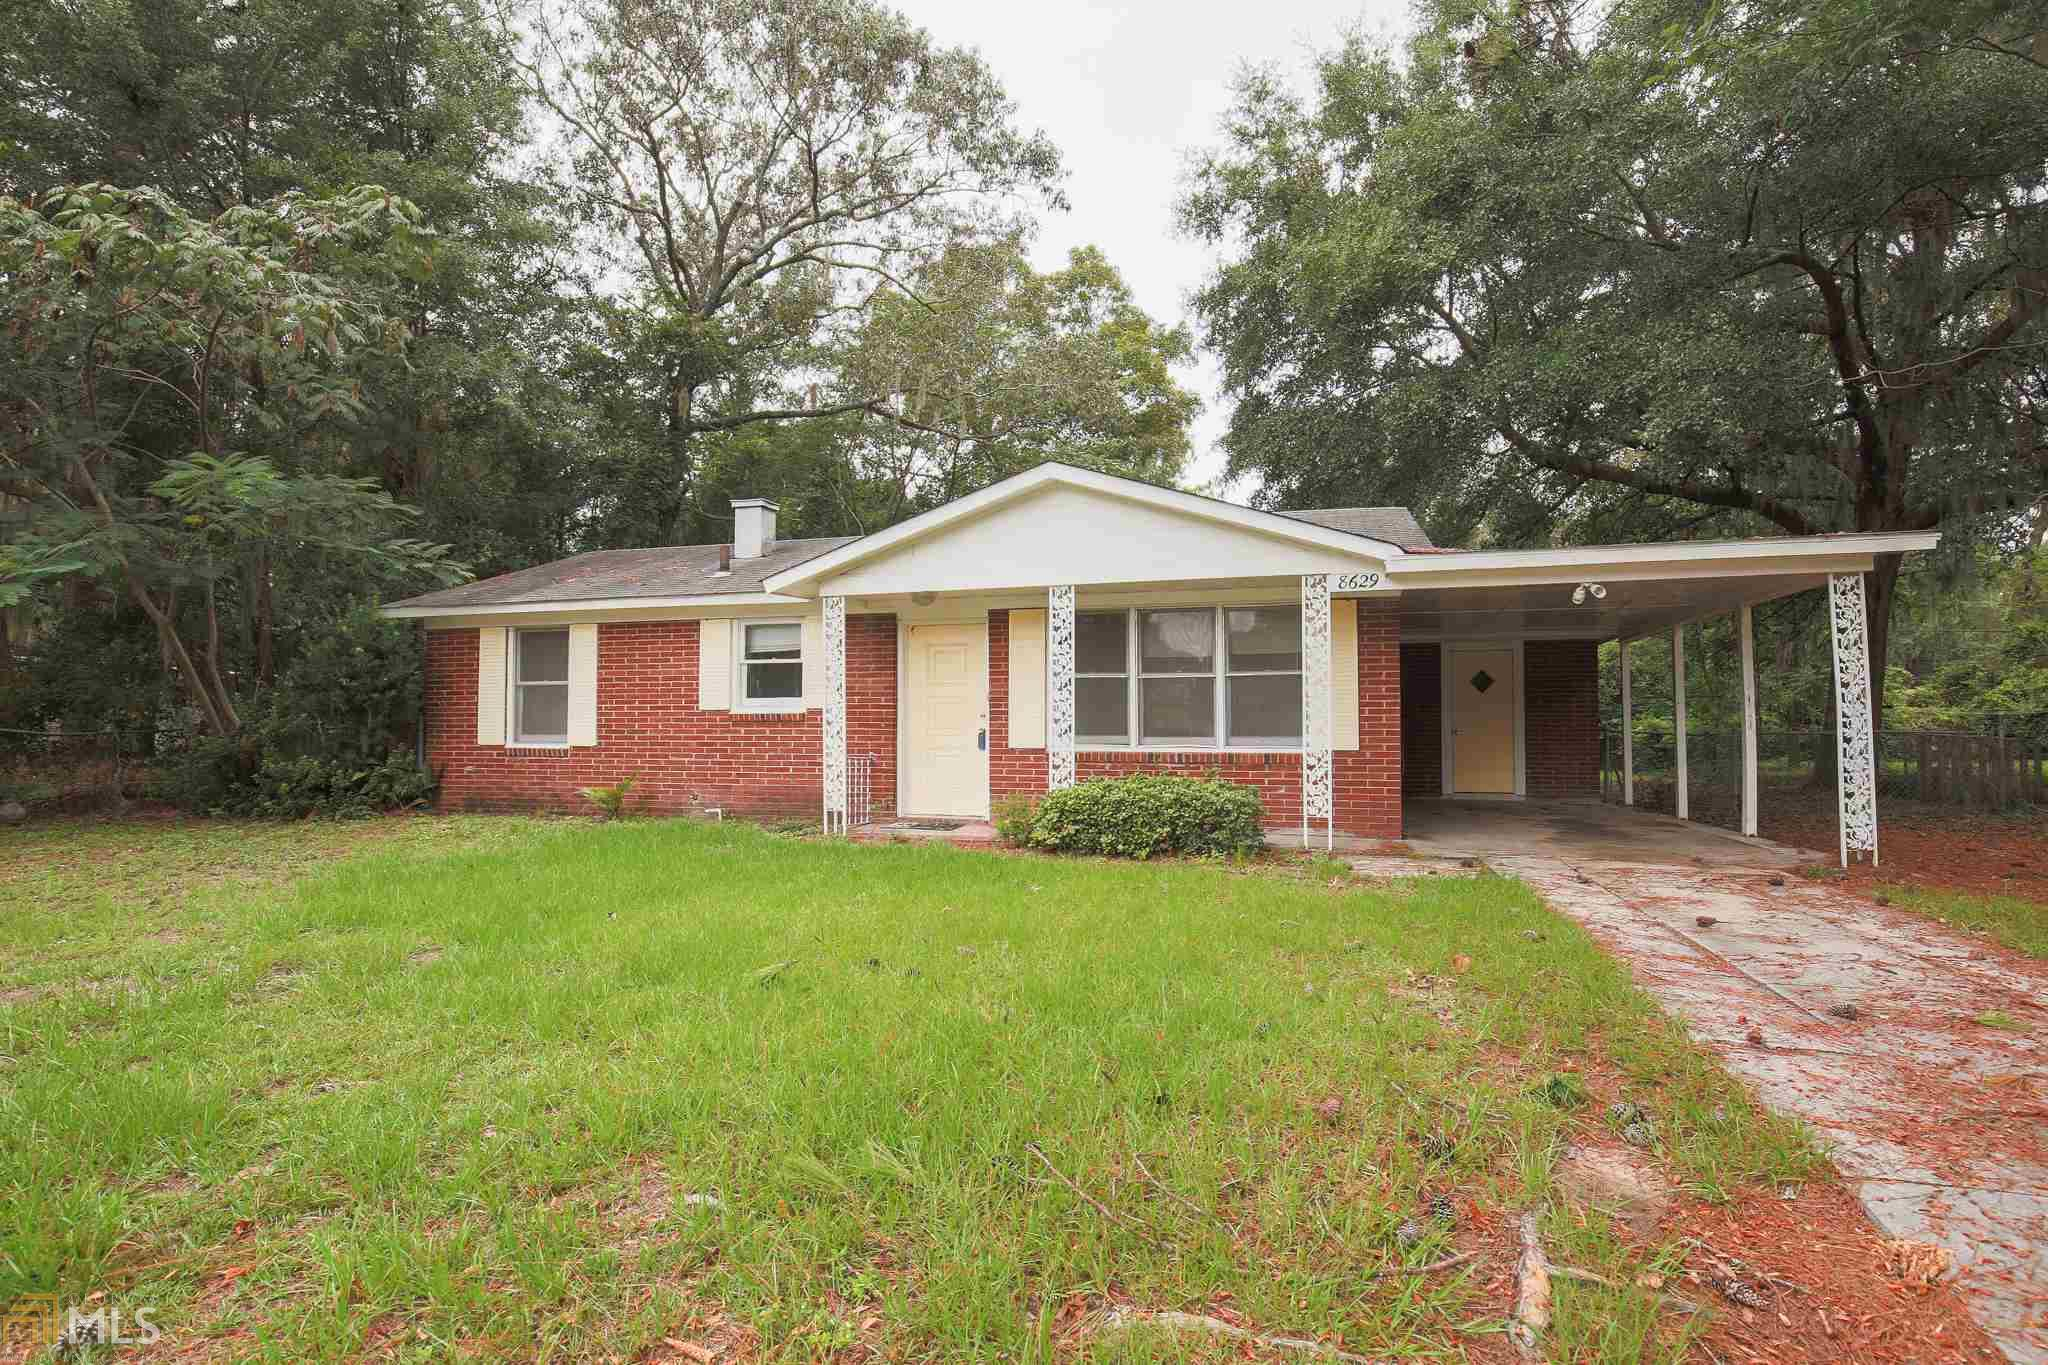 8629 Old Montgomery, Savannah, GA 31406